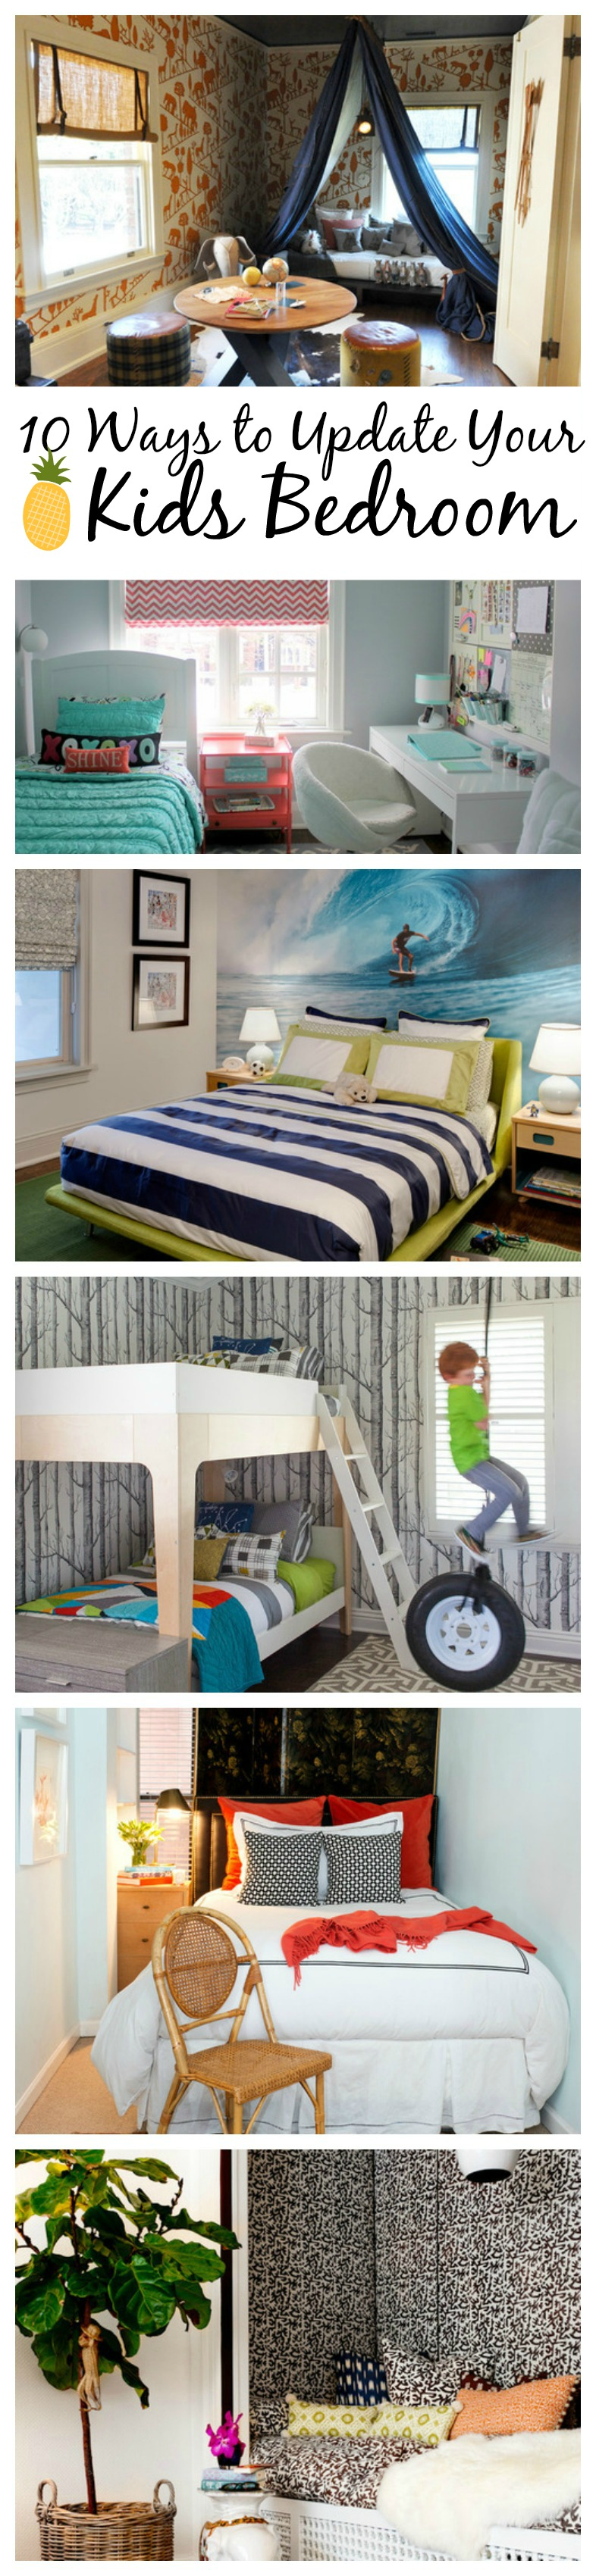 Refresh Your Child's Room for a New School Year